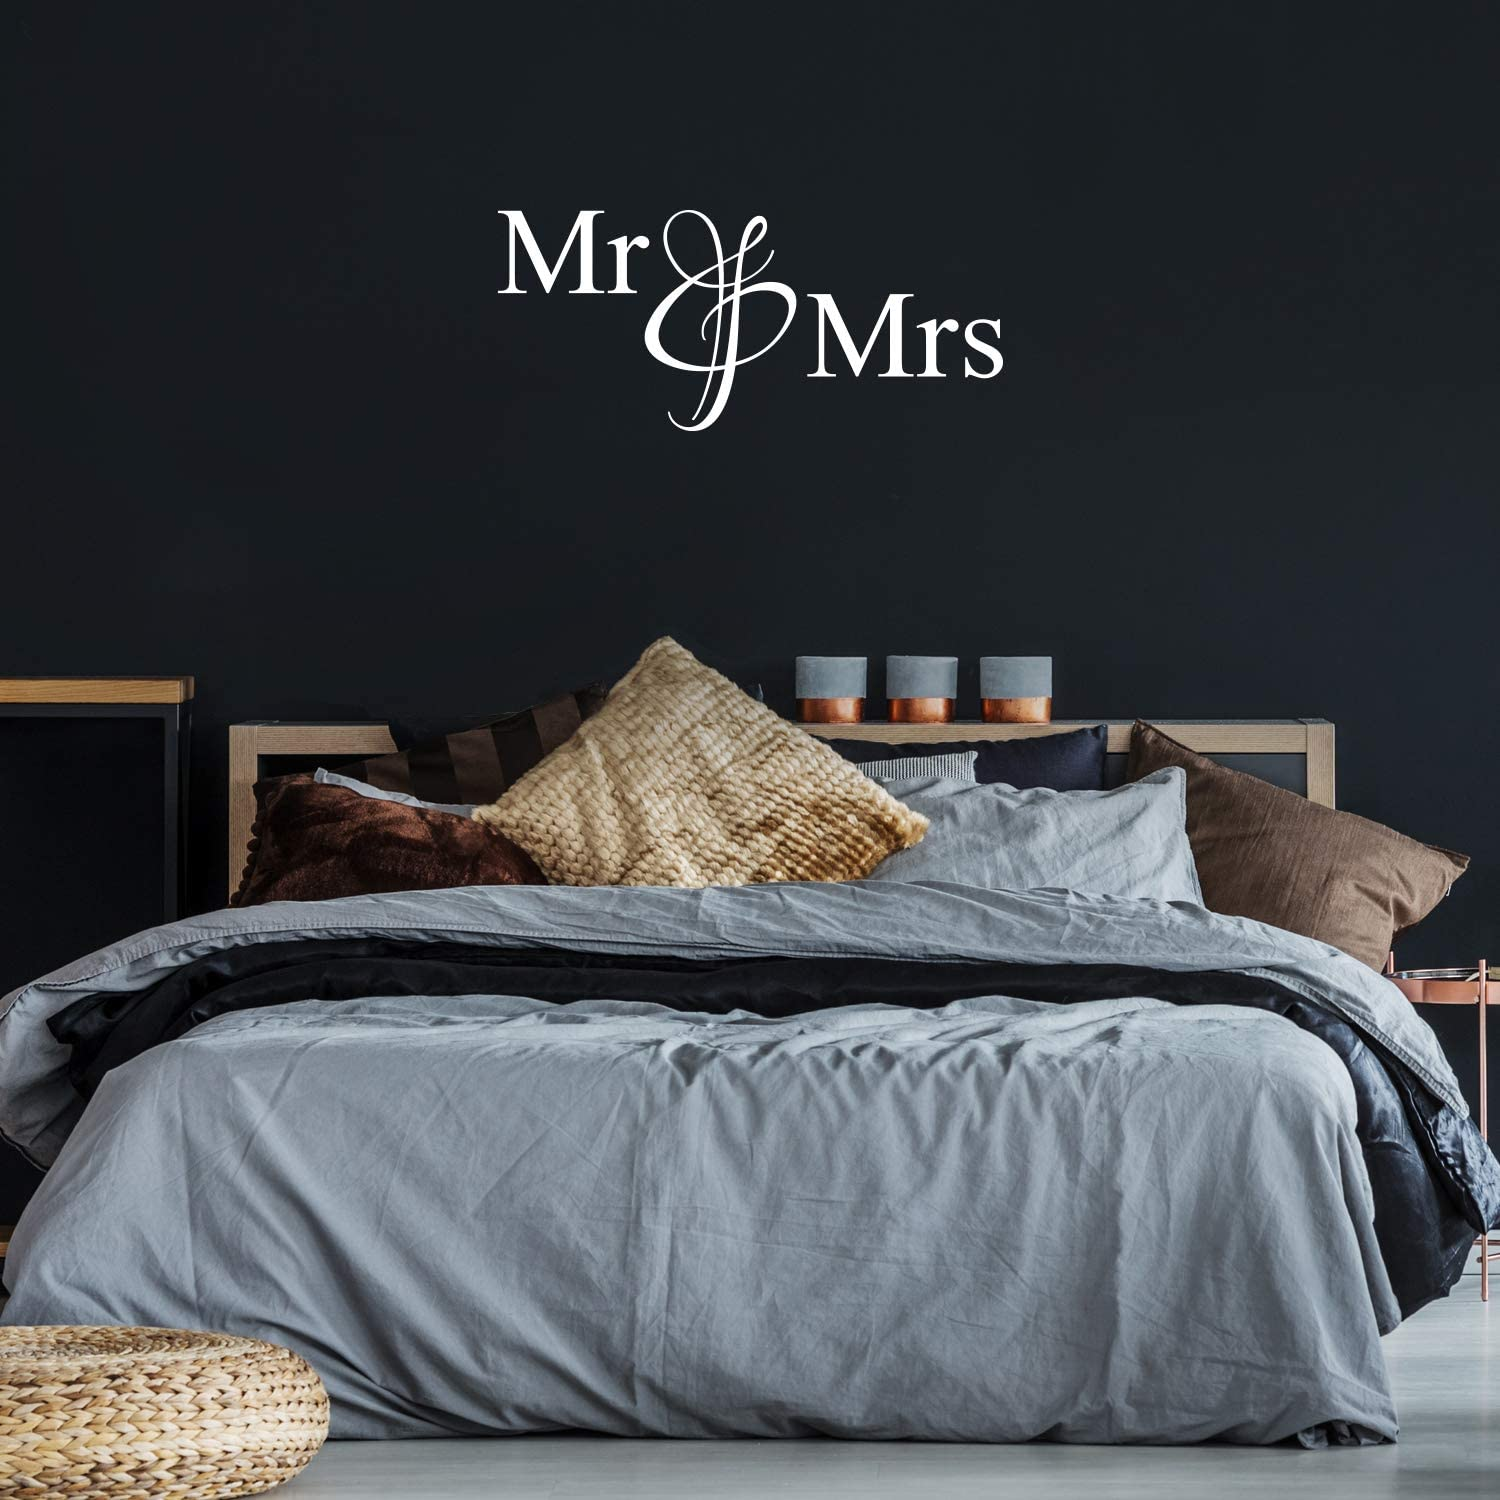 "Vinyl Wall Art Decal - Mr & Mrs - 20"" x 45.5"" - Modern Inspirational Cute Quote Sticker for Family Home Office Living Room Couple Bedroom Entryway Patio Decor (White)"